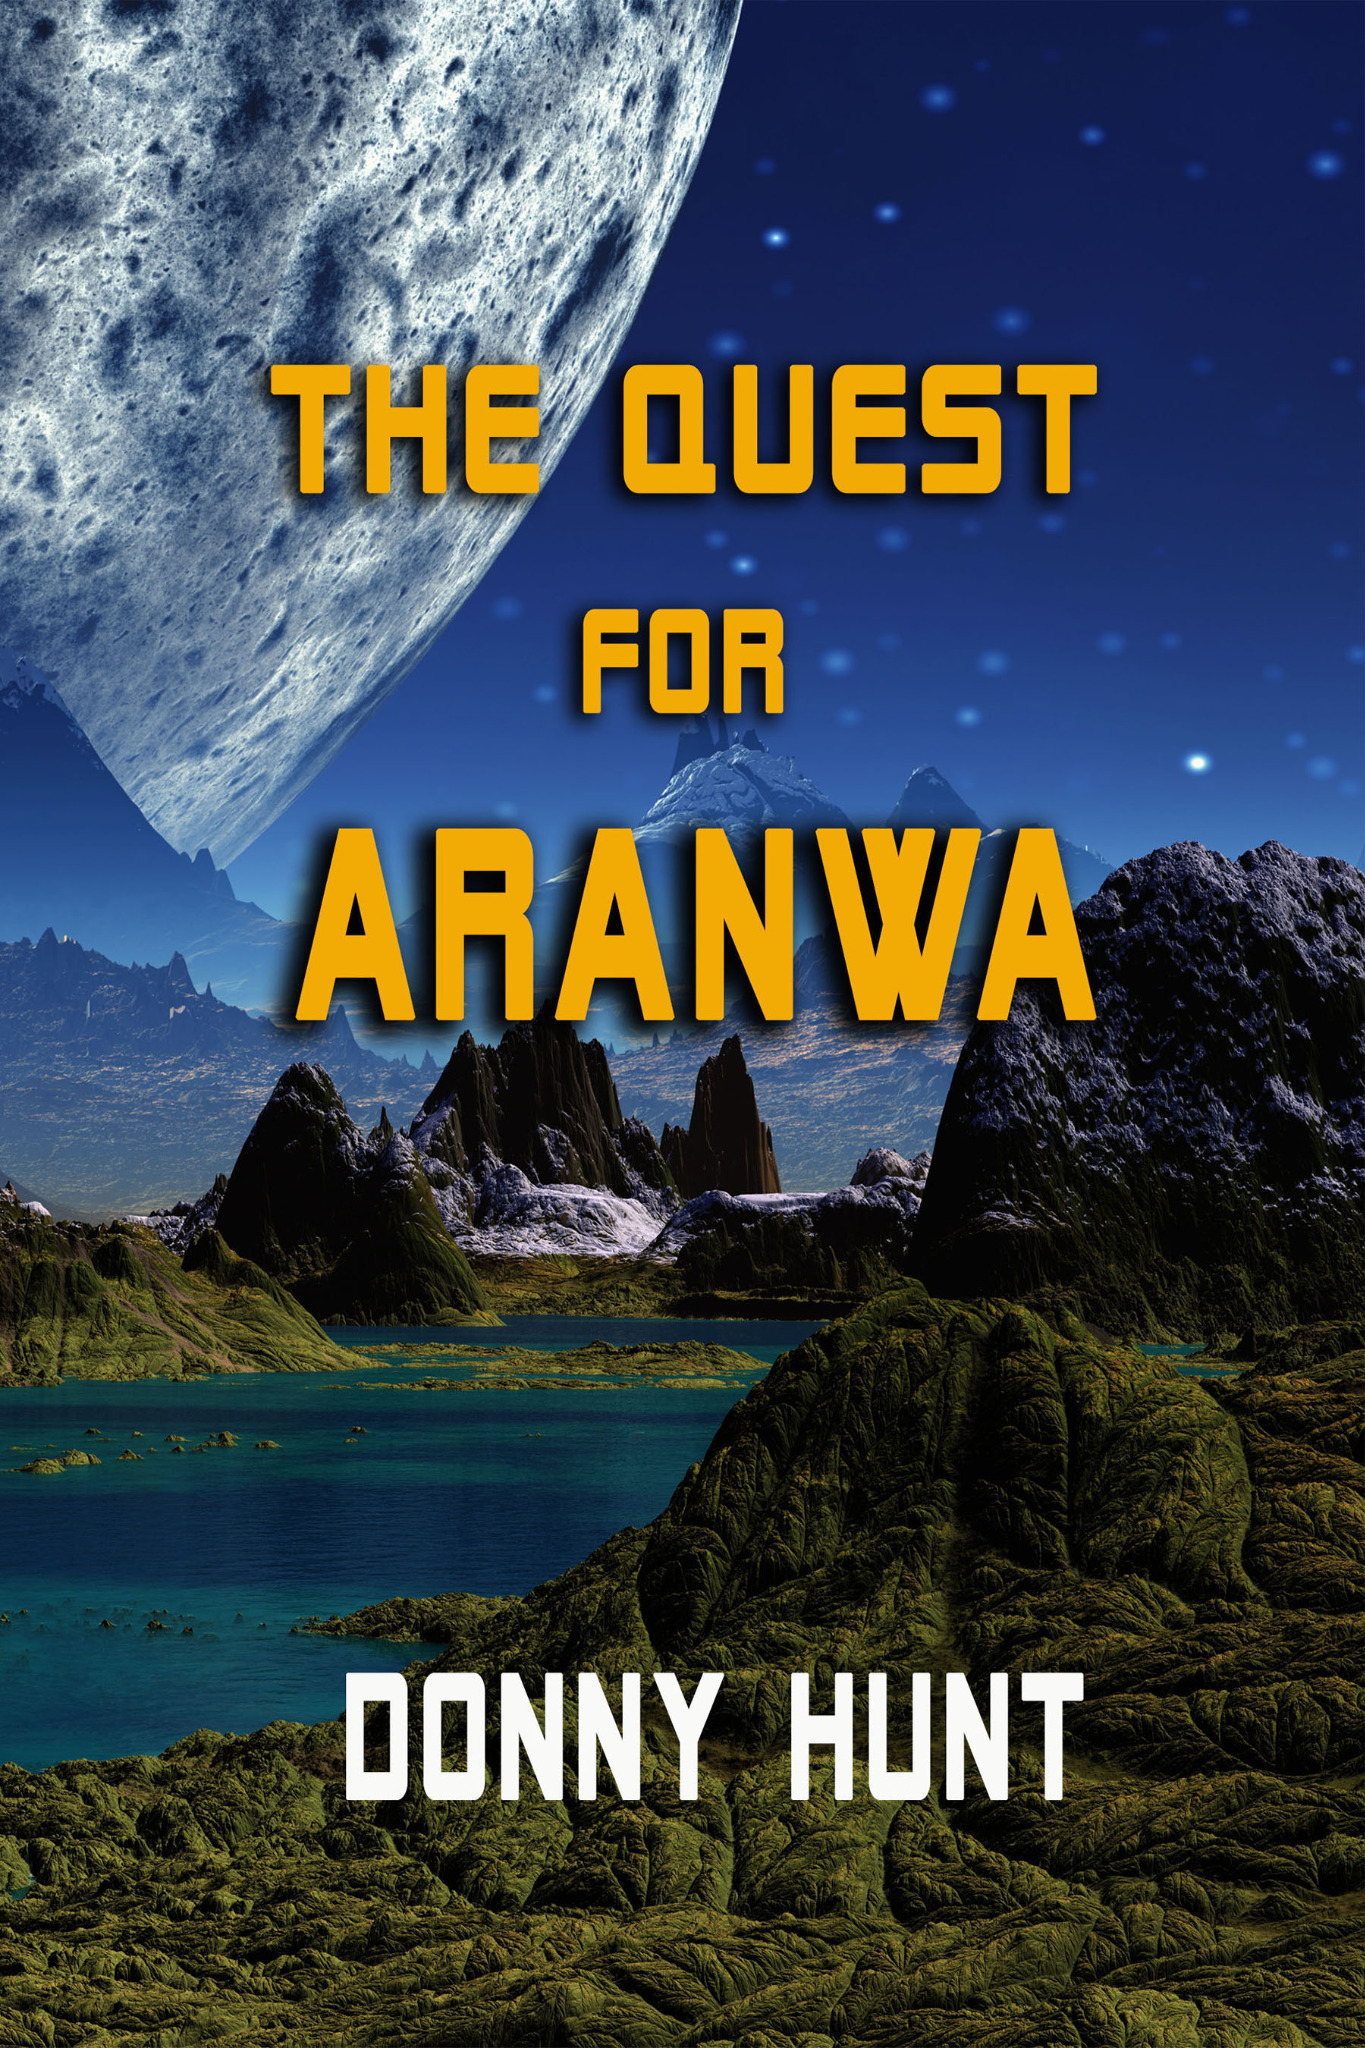 The Quest for Aranwa